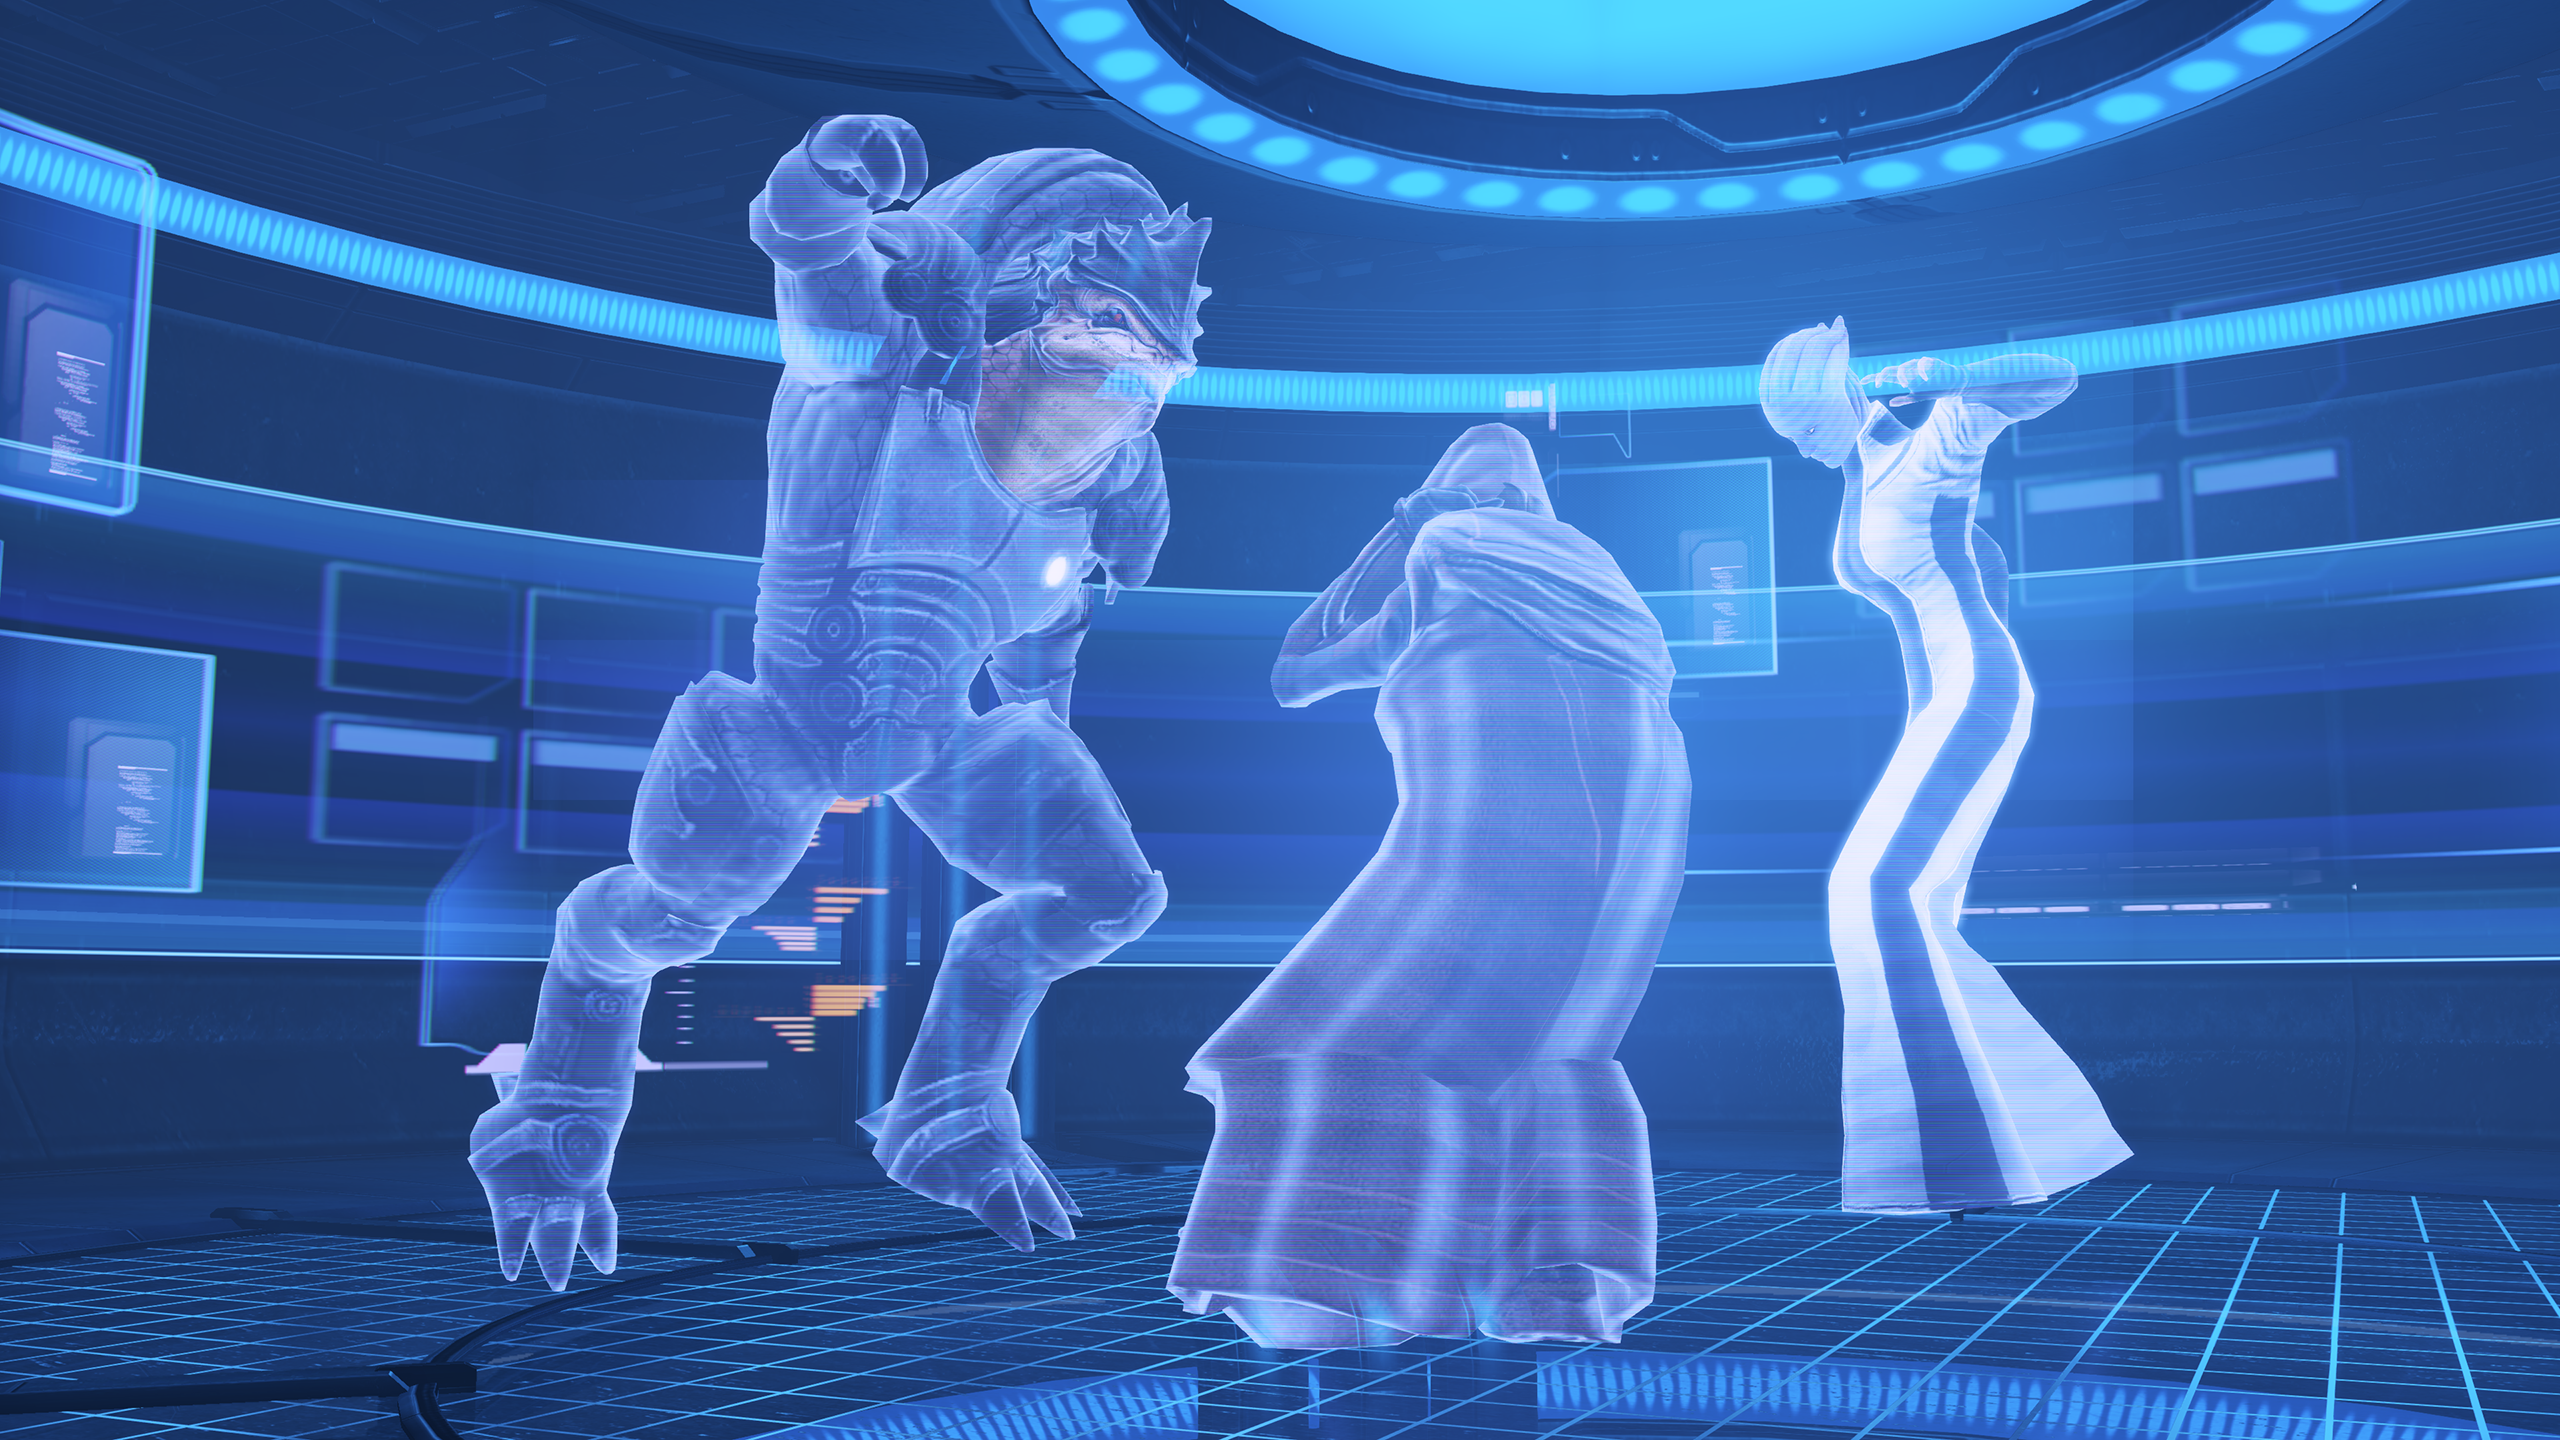 Citadel Archives - year 700 CE, Krogan Rebellions, attack on Council, vault K306.png